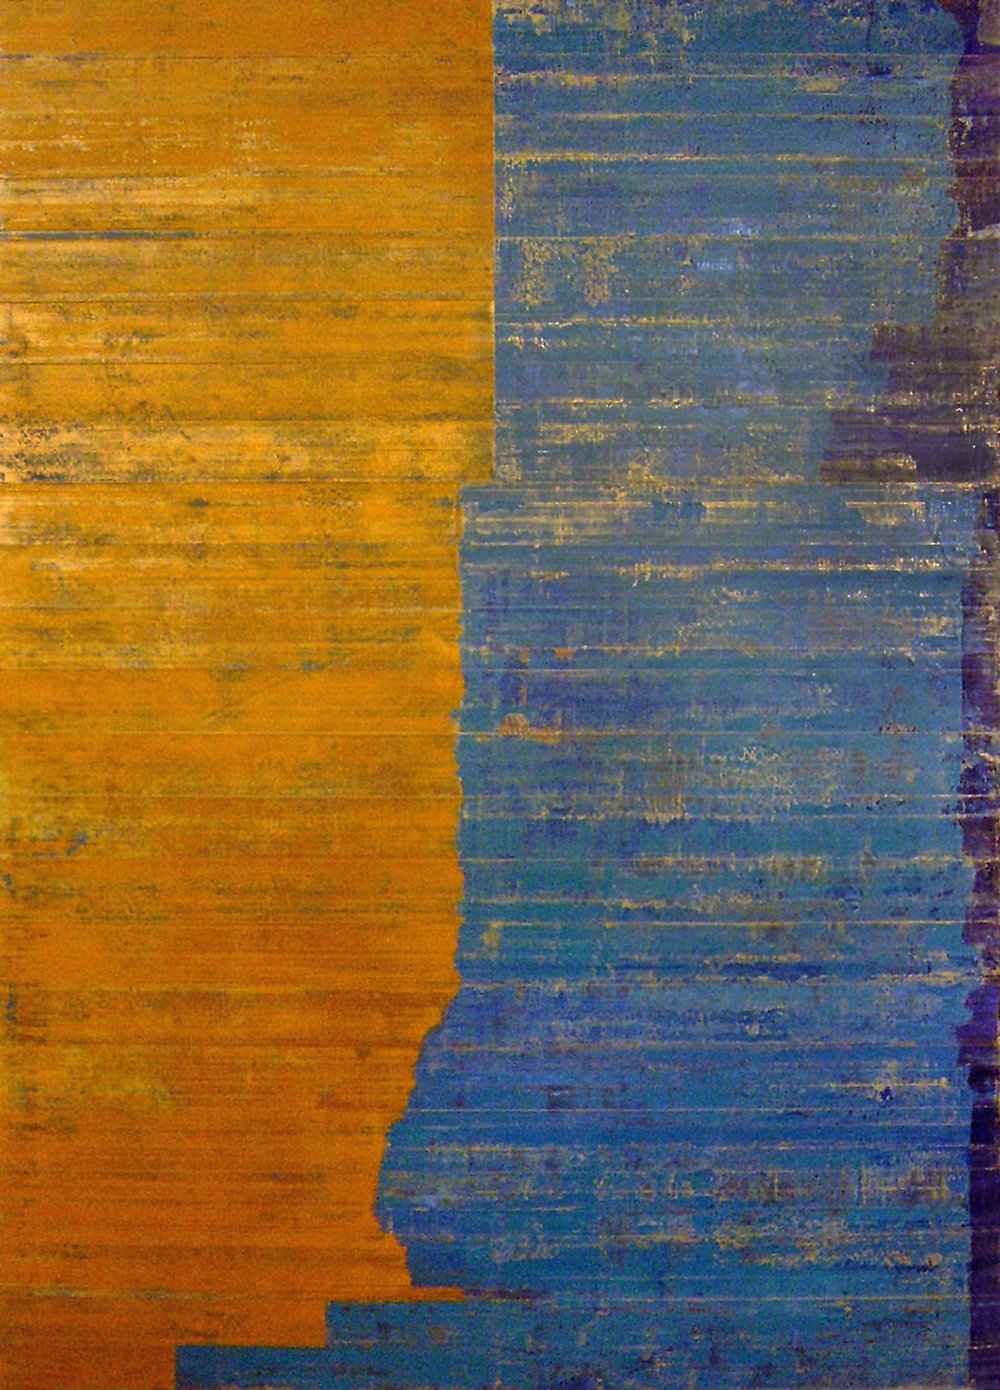 Territory Blue, 2007, Oil on linen over panel, 68 x 48 inches.